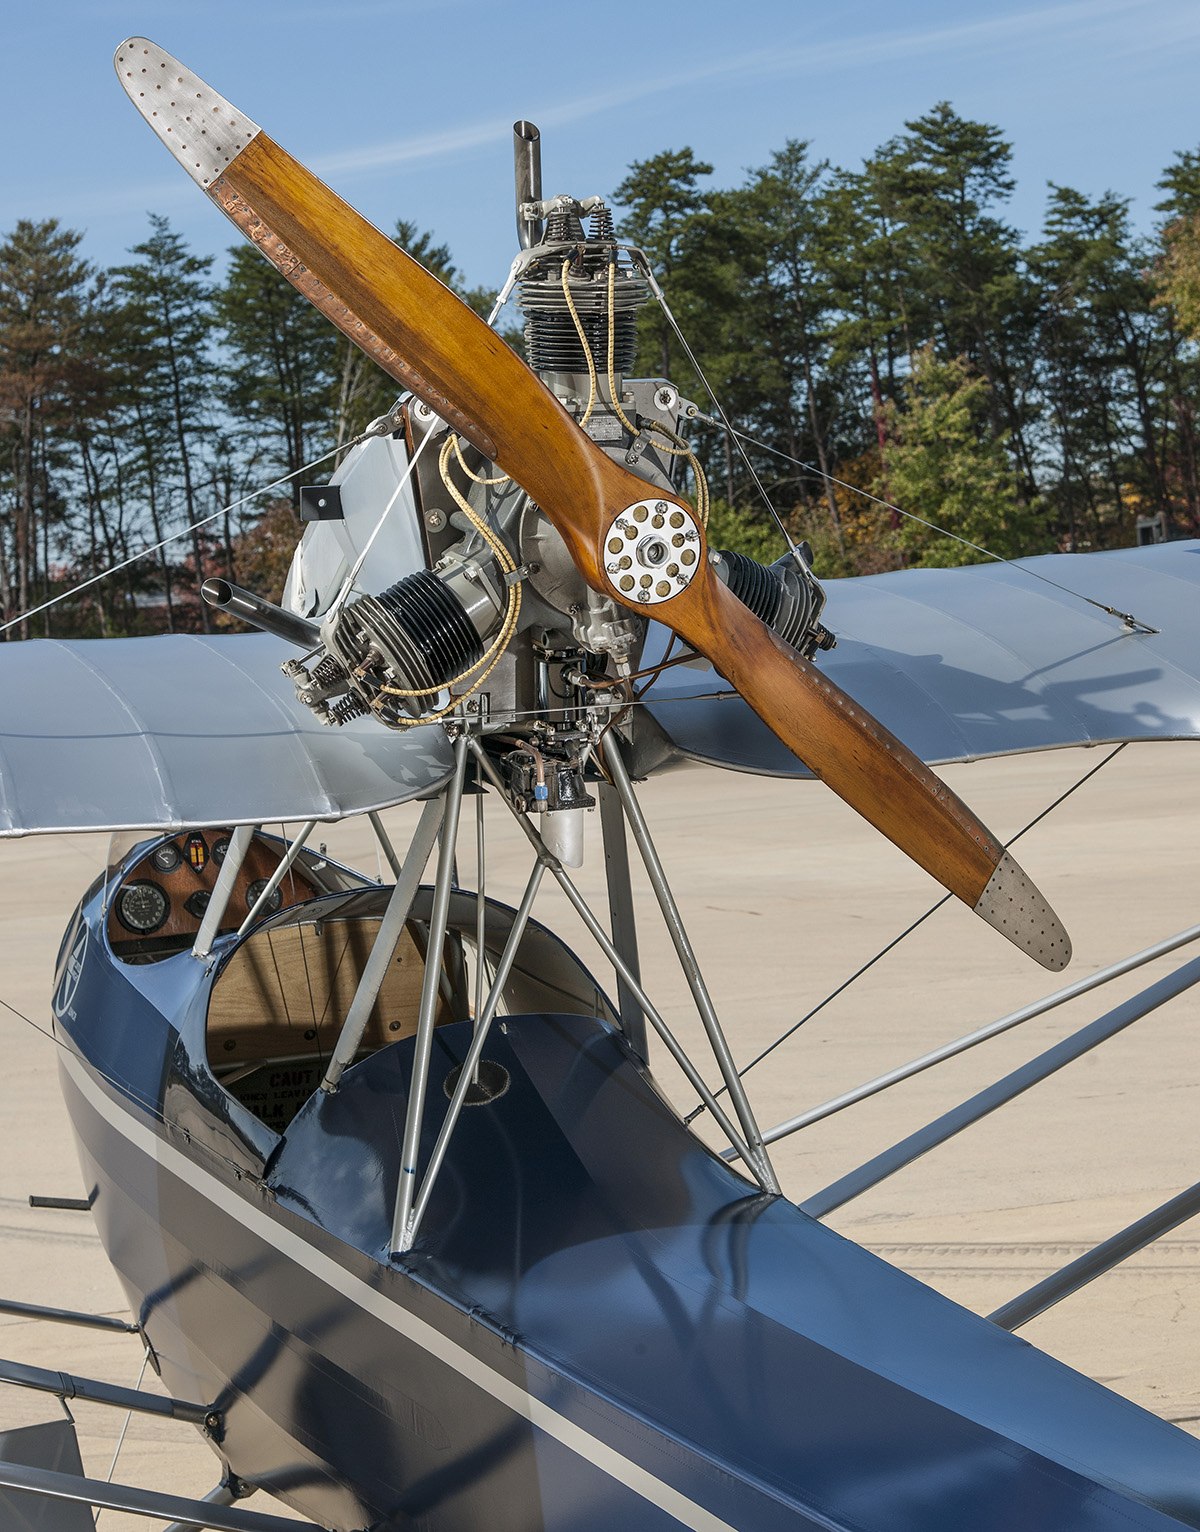 Curtiss-Wright CW-1 Junior